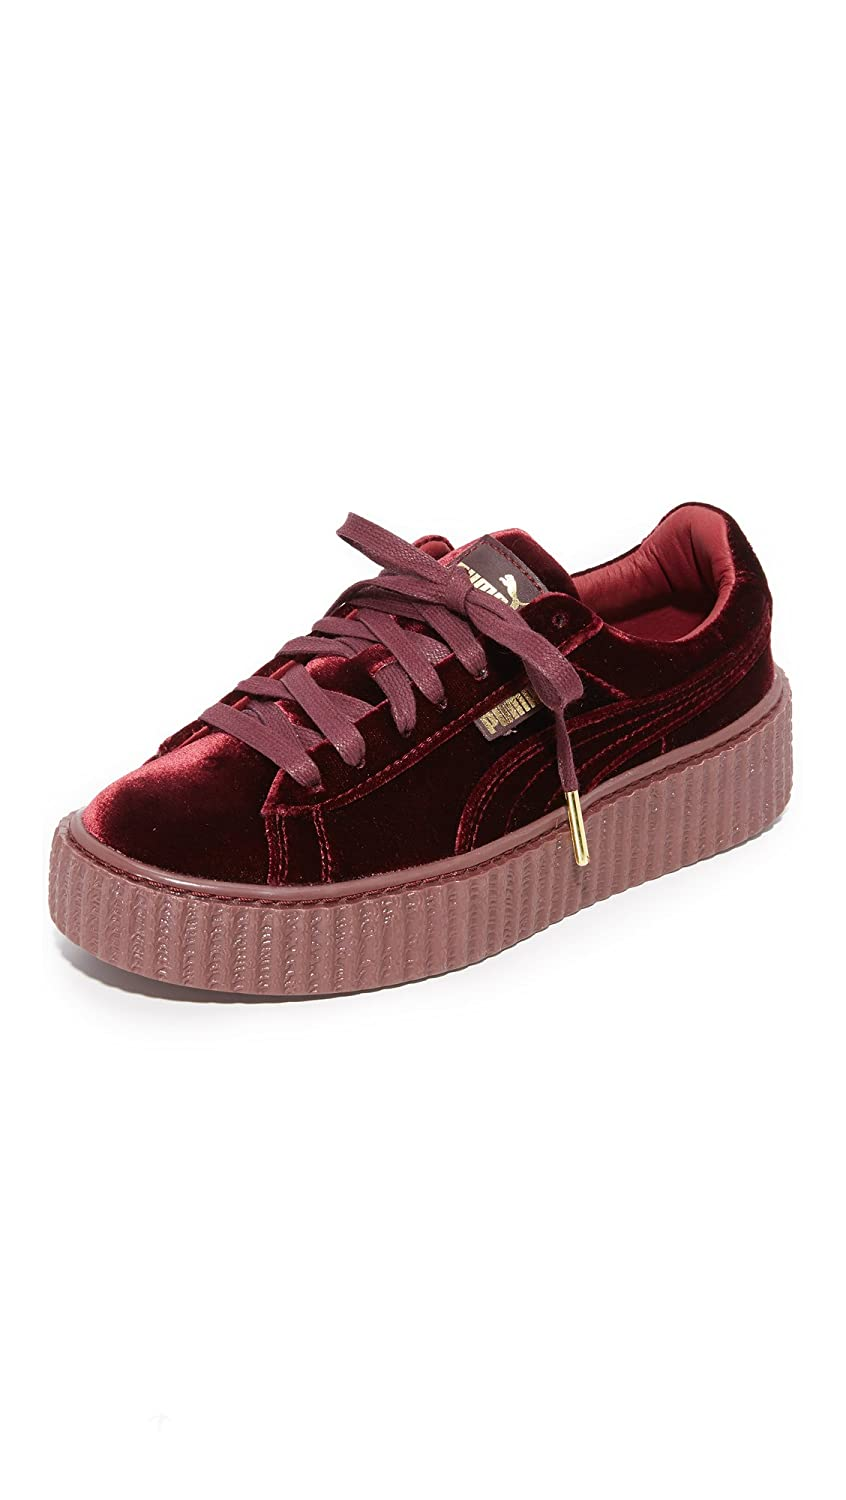 sports shoes b7c4c de95d PUMA Women's Creeper Velvet Sneakers